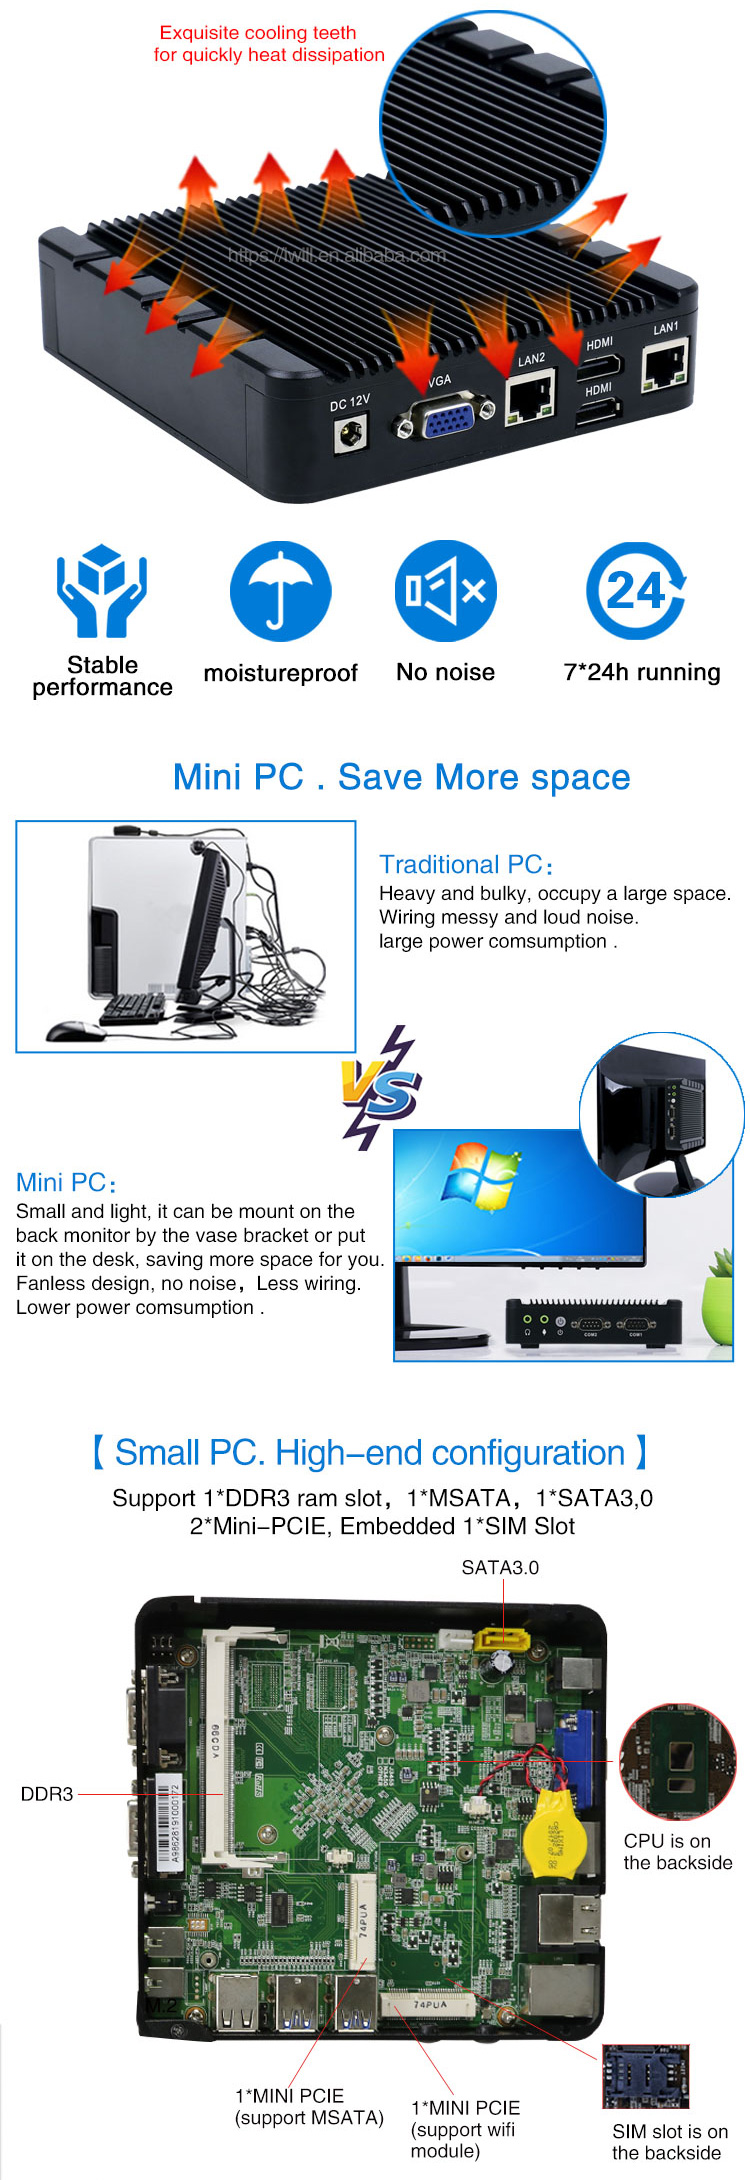 Iwill Free shipping Fanless Mini PC Intel Apollo Lake J3455 dual lan Onboard 32G EMMC computer with 12V Power NO ram NO WiFi